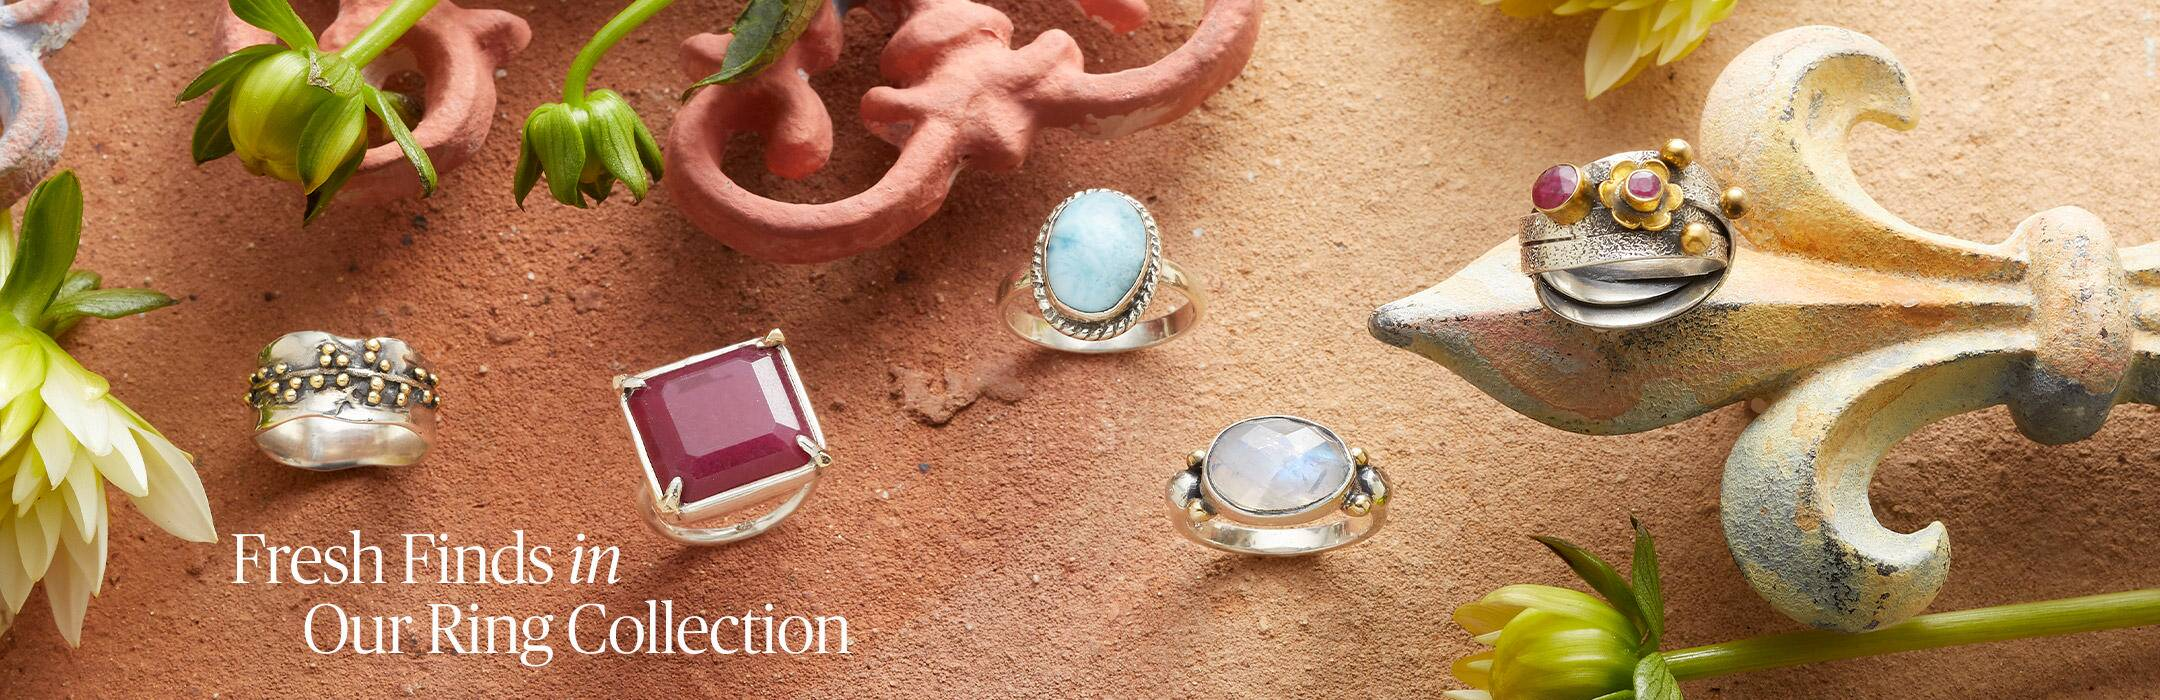 Fresh Finds In Our Ring Collection